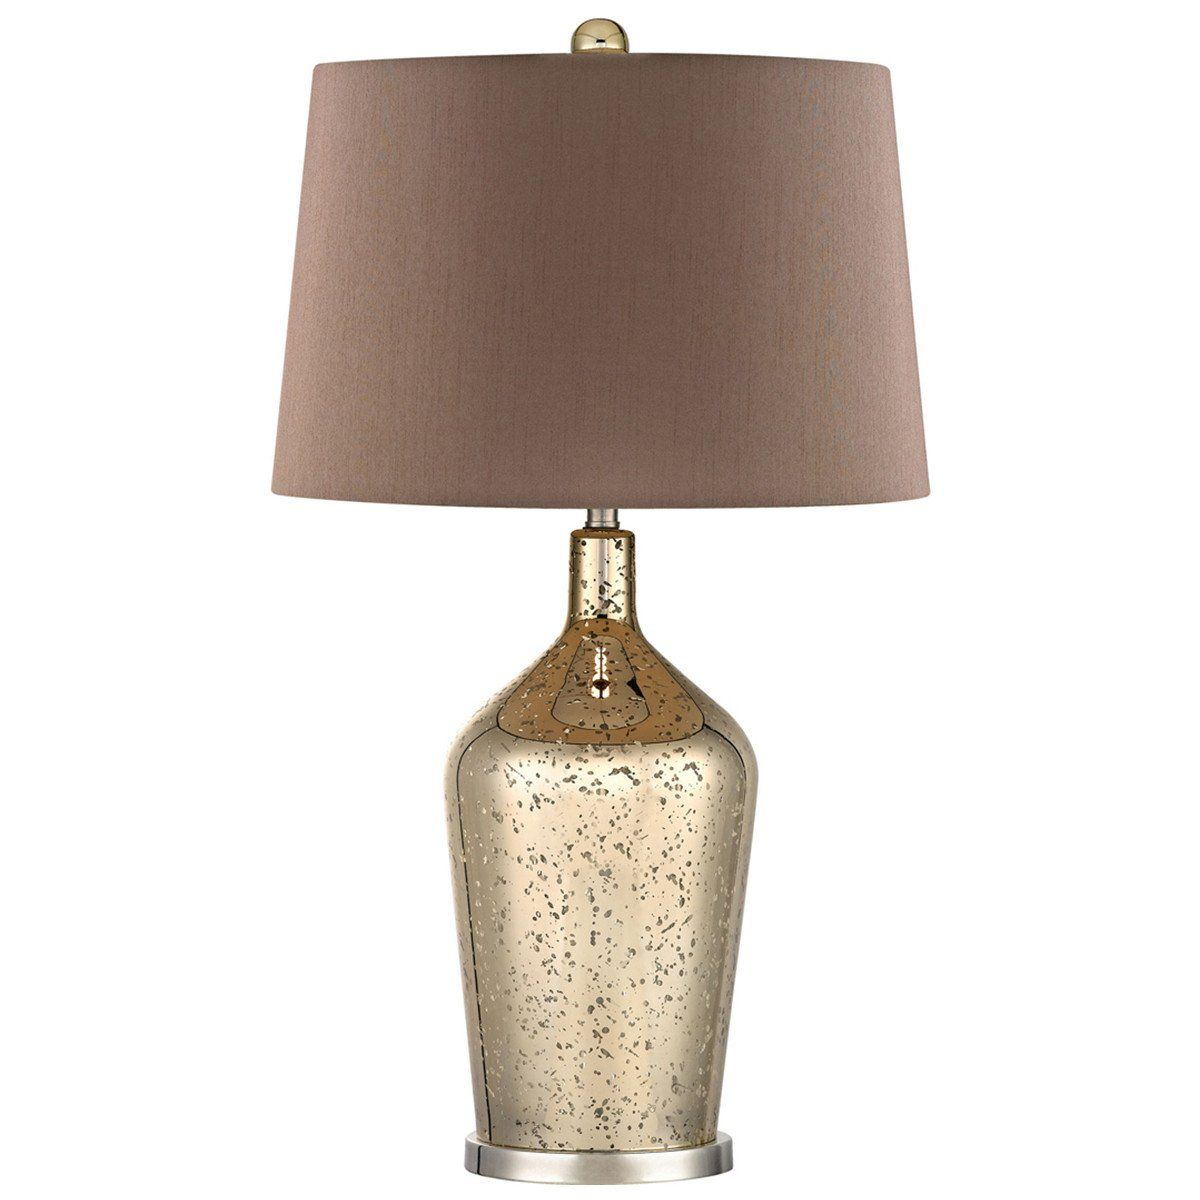 This Lamp Is Part Of A Collection That Is Relaxed Comfortable And Pure With A Focus On Light Color And Mercury Glass Table Lamp Bottle Table Lamps Table Lamp